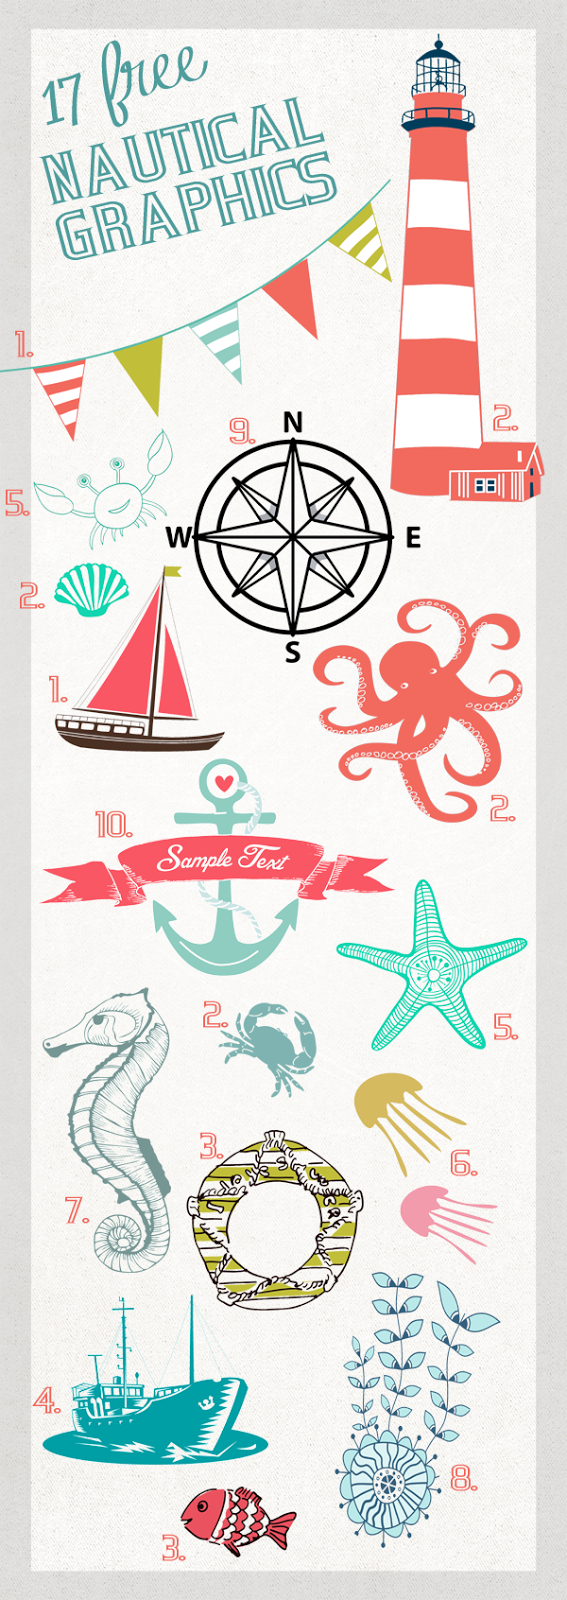 Create a Nautical Infographic